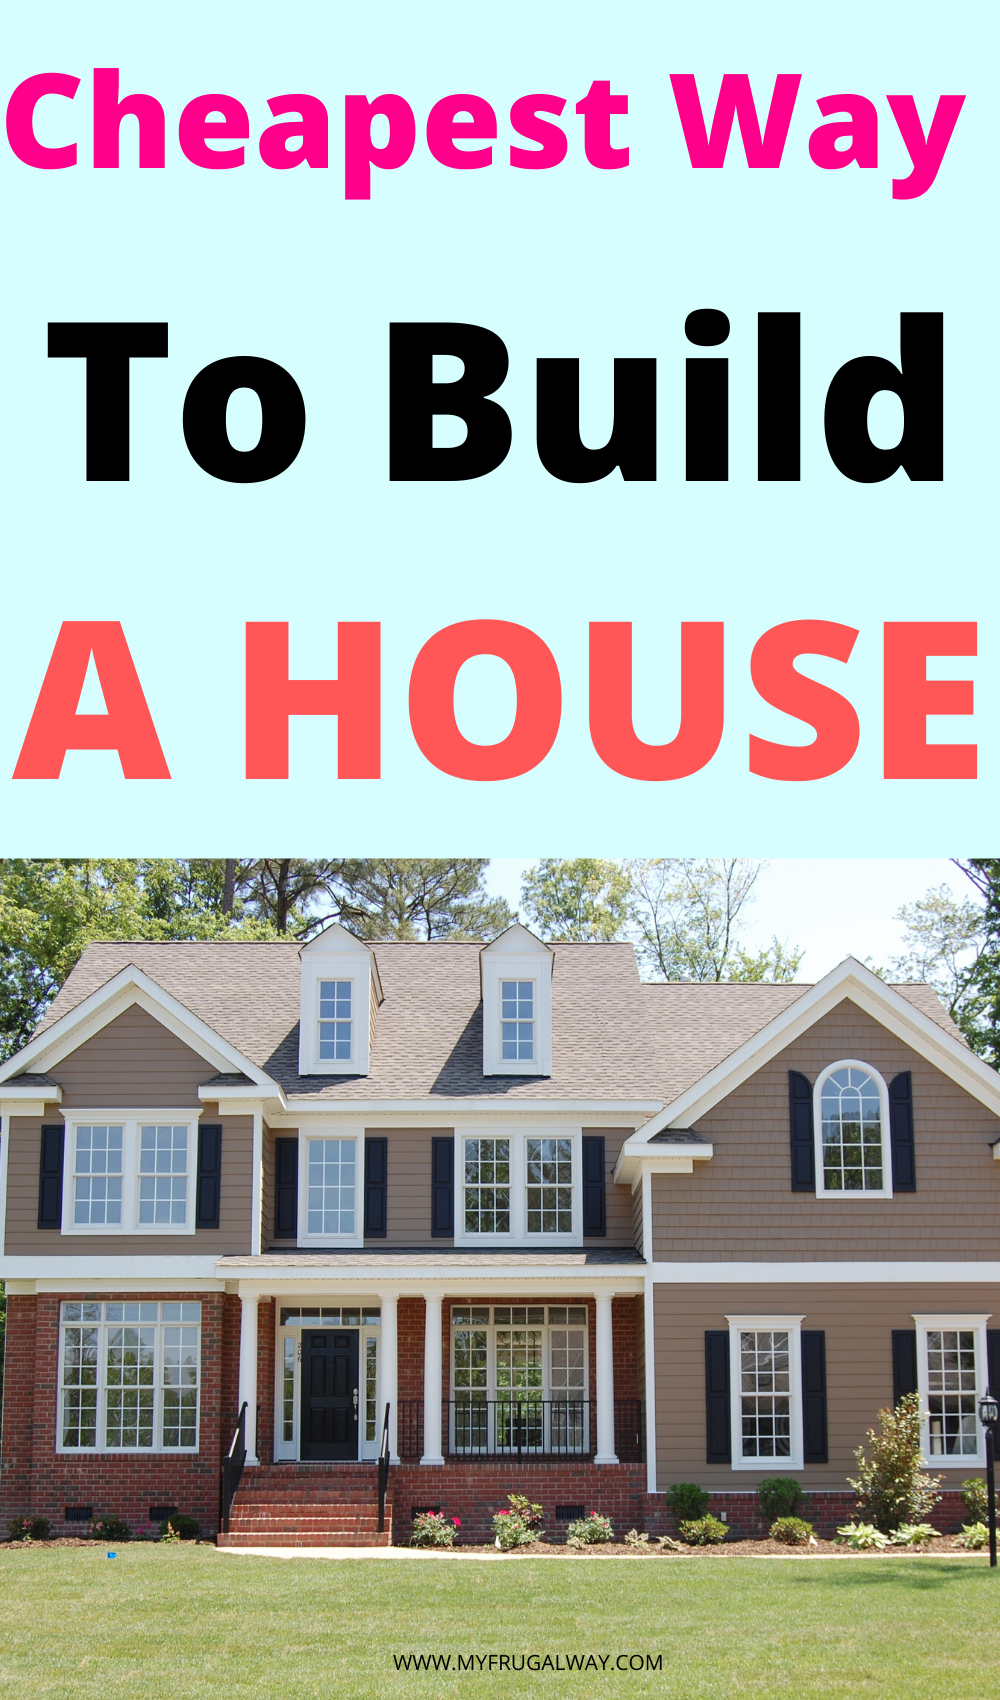 Cheapest Way To Build A House On A Budget Home Building Tips Budget House Plans Building A House